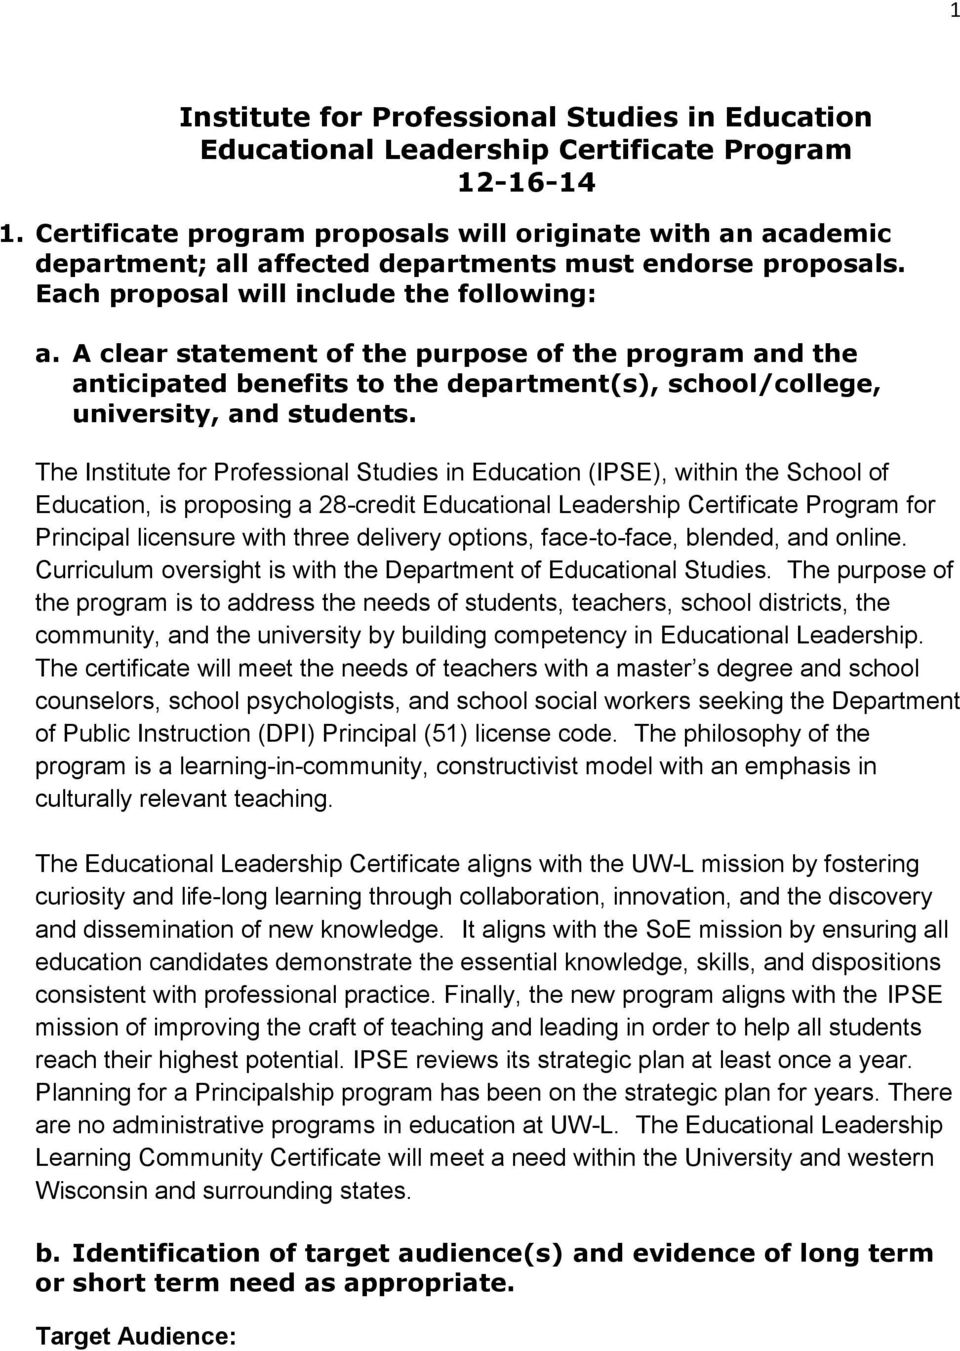 A clear statement of the purpose of the program and the anticipated benefits to the department(s), school/college, university, and students.